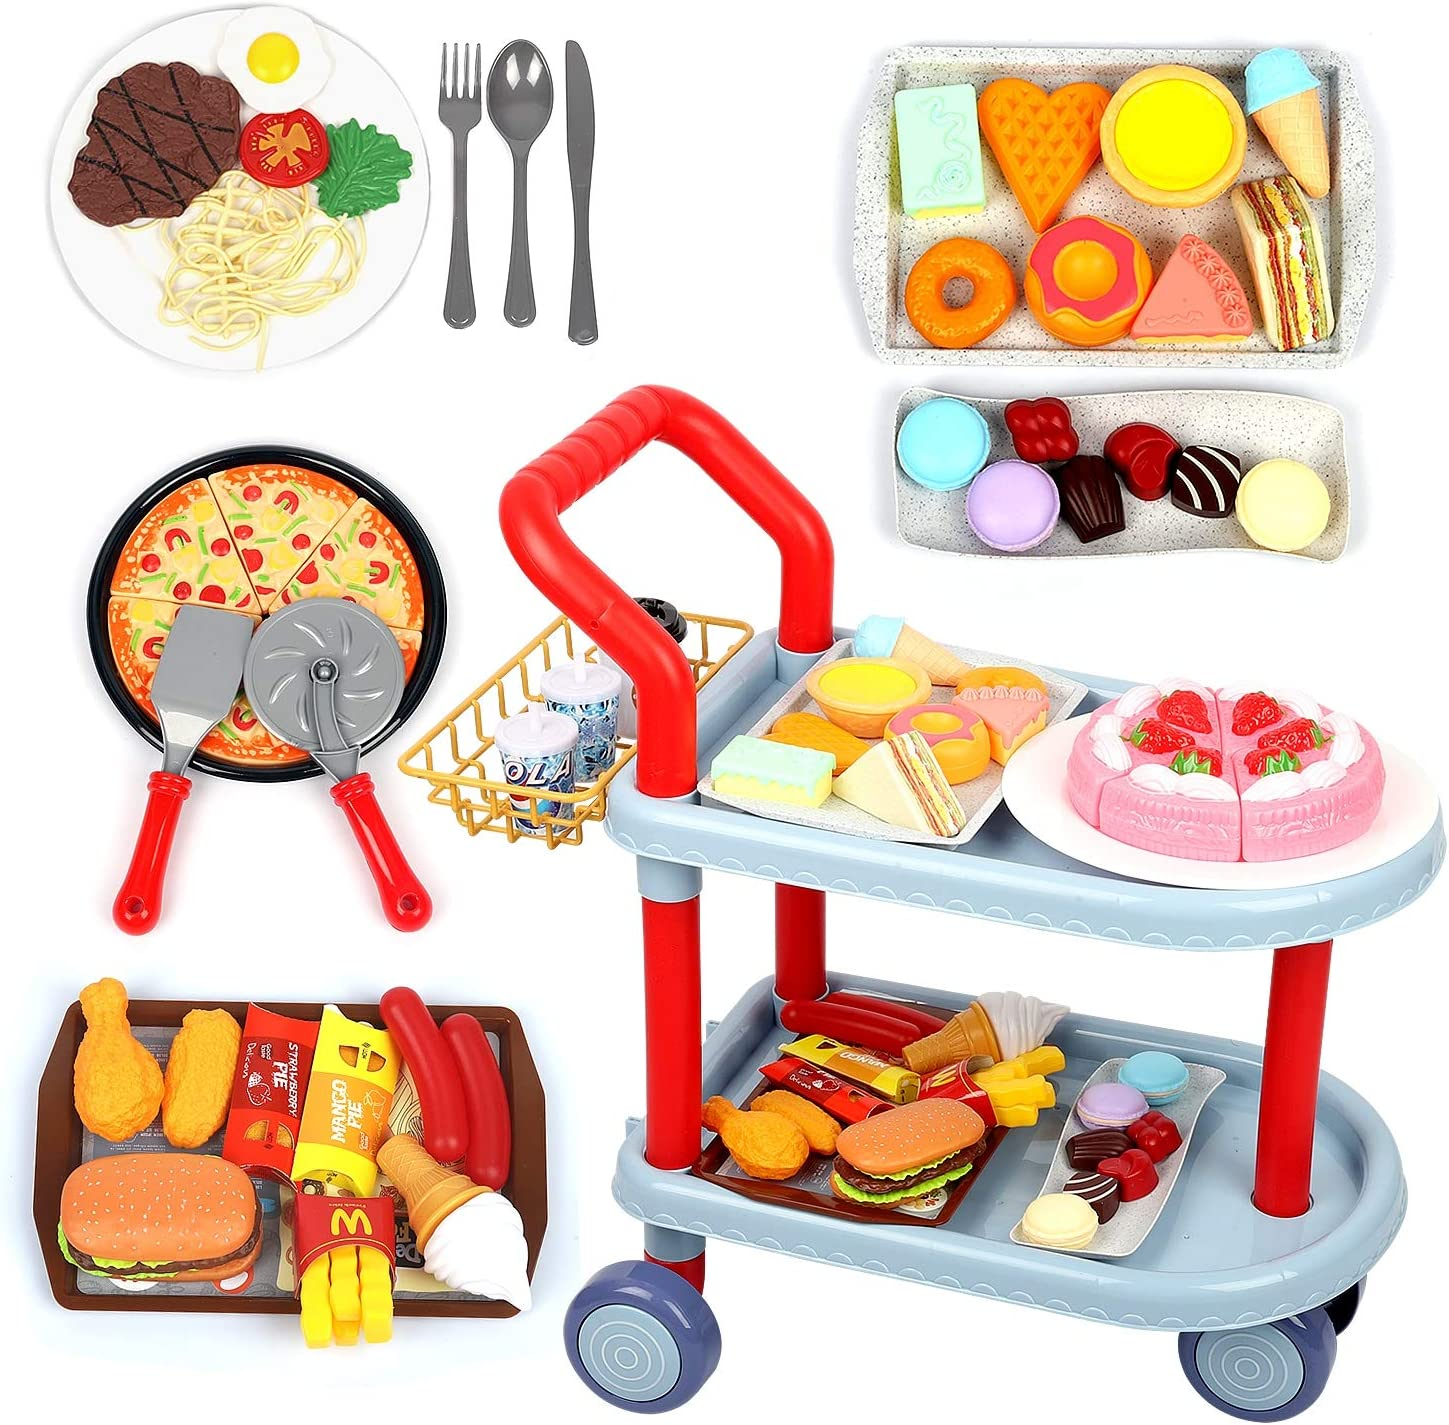 Food cart Toy Set, Large Dining car Toys with 81pcs Food, Kids Pretend Role Play Food Kitchen Playset, Tableware Accessories, Learning Educational Toys for 3 4 5 Years Old Boy Girl